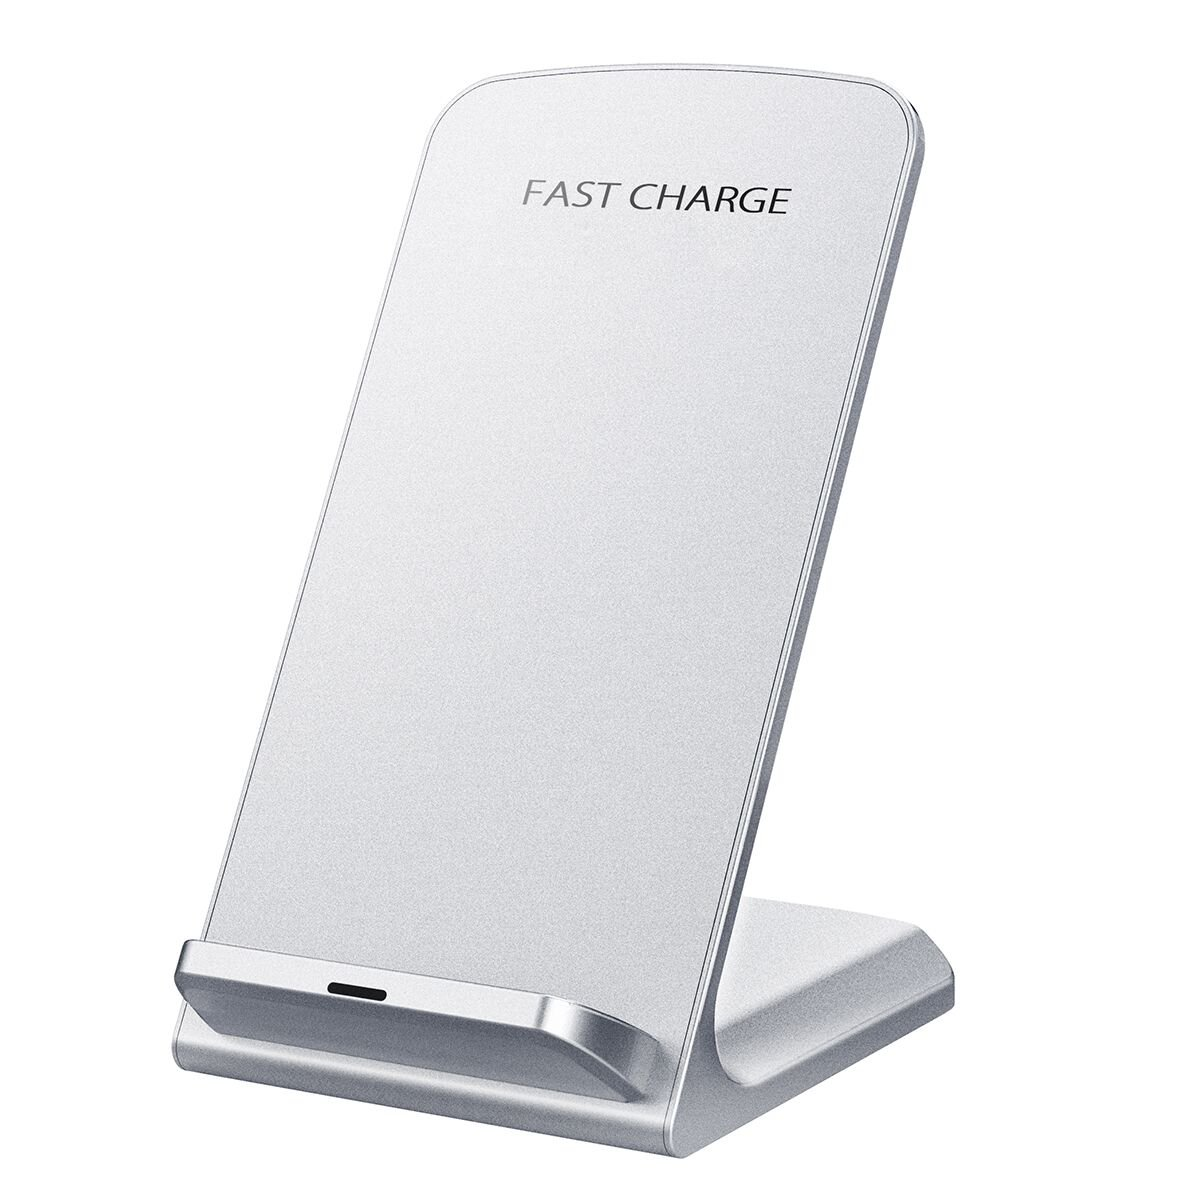 Wireless Charger, Seneo Upgraded Qi Certified 10W Fast Wireless Charger Charging Pad Stand (No AC Adapter) for Galaxy S9/S9+ Note 8/5 S8/S8+ S7/S7 Edge S6 Edge+, Standard Qi Charger for iPhoneX/8/8+ by Seneo